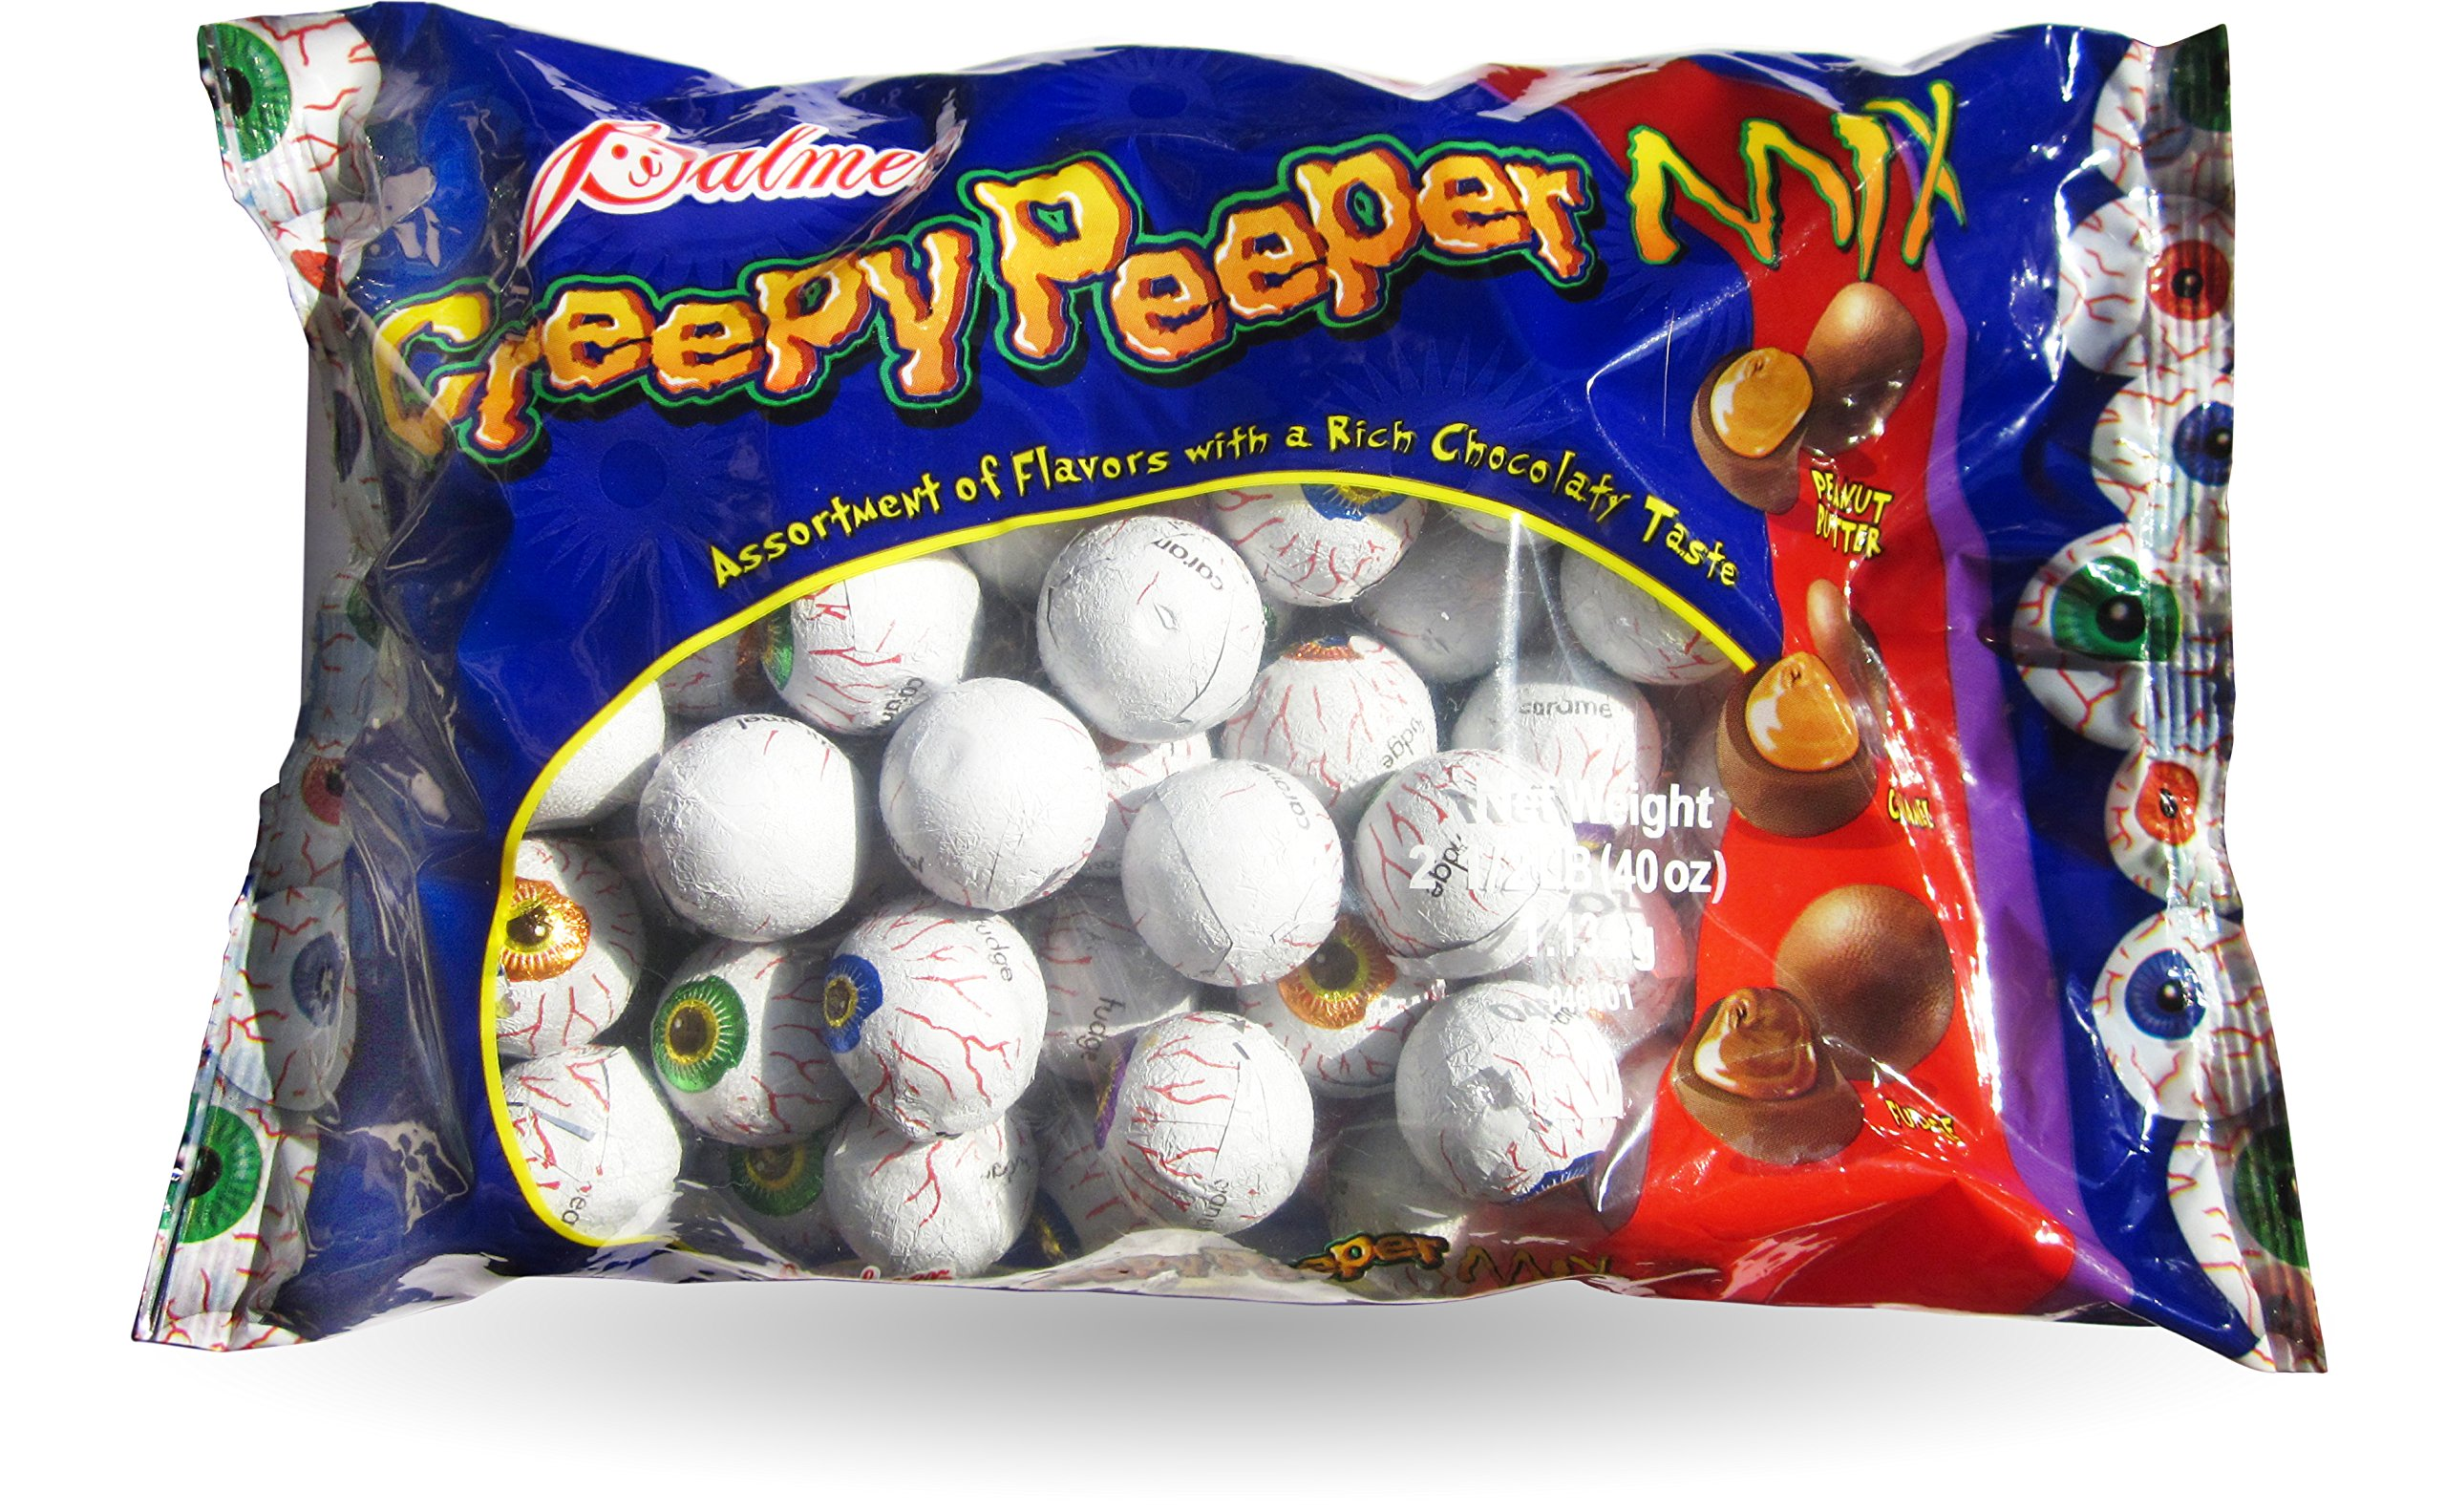 Palmer Creepy Peeper Mix Big 2.5 Lb Bag. (Fudge, Caramel, Peanut Butter) Eyeballs wrapped in Foil - Perfect for Halloween Snack Bowls! by Palmer